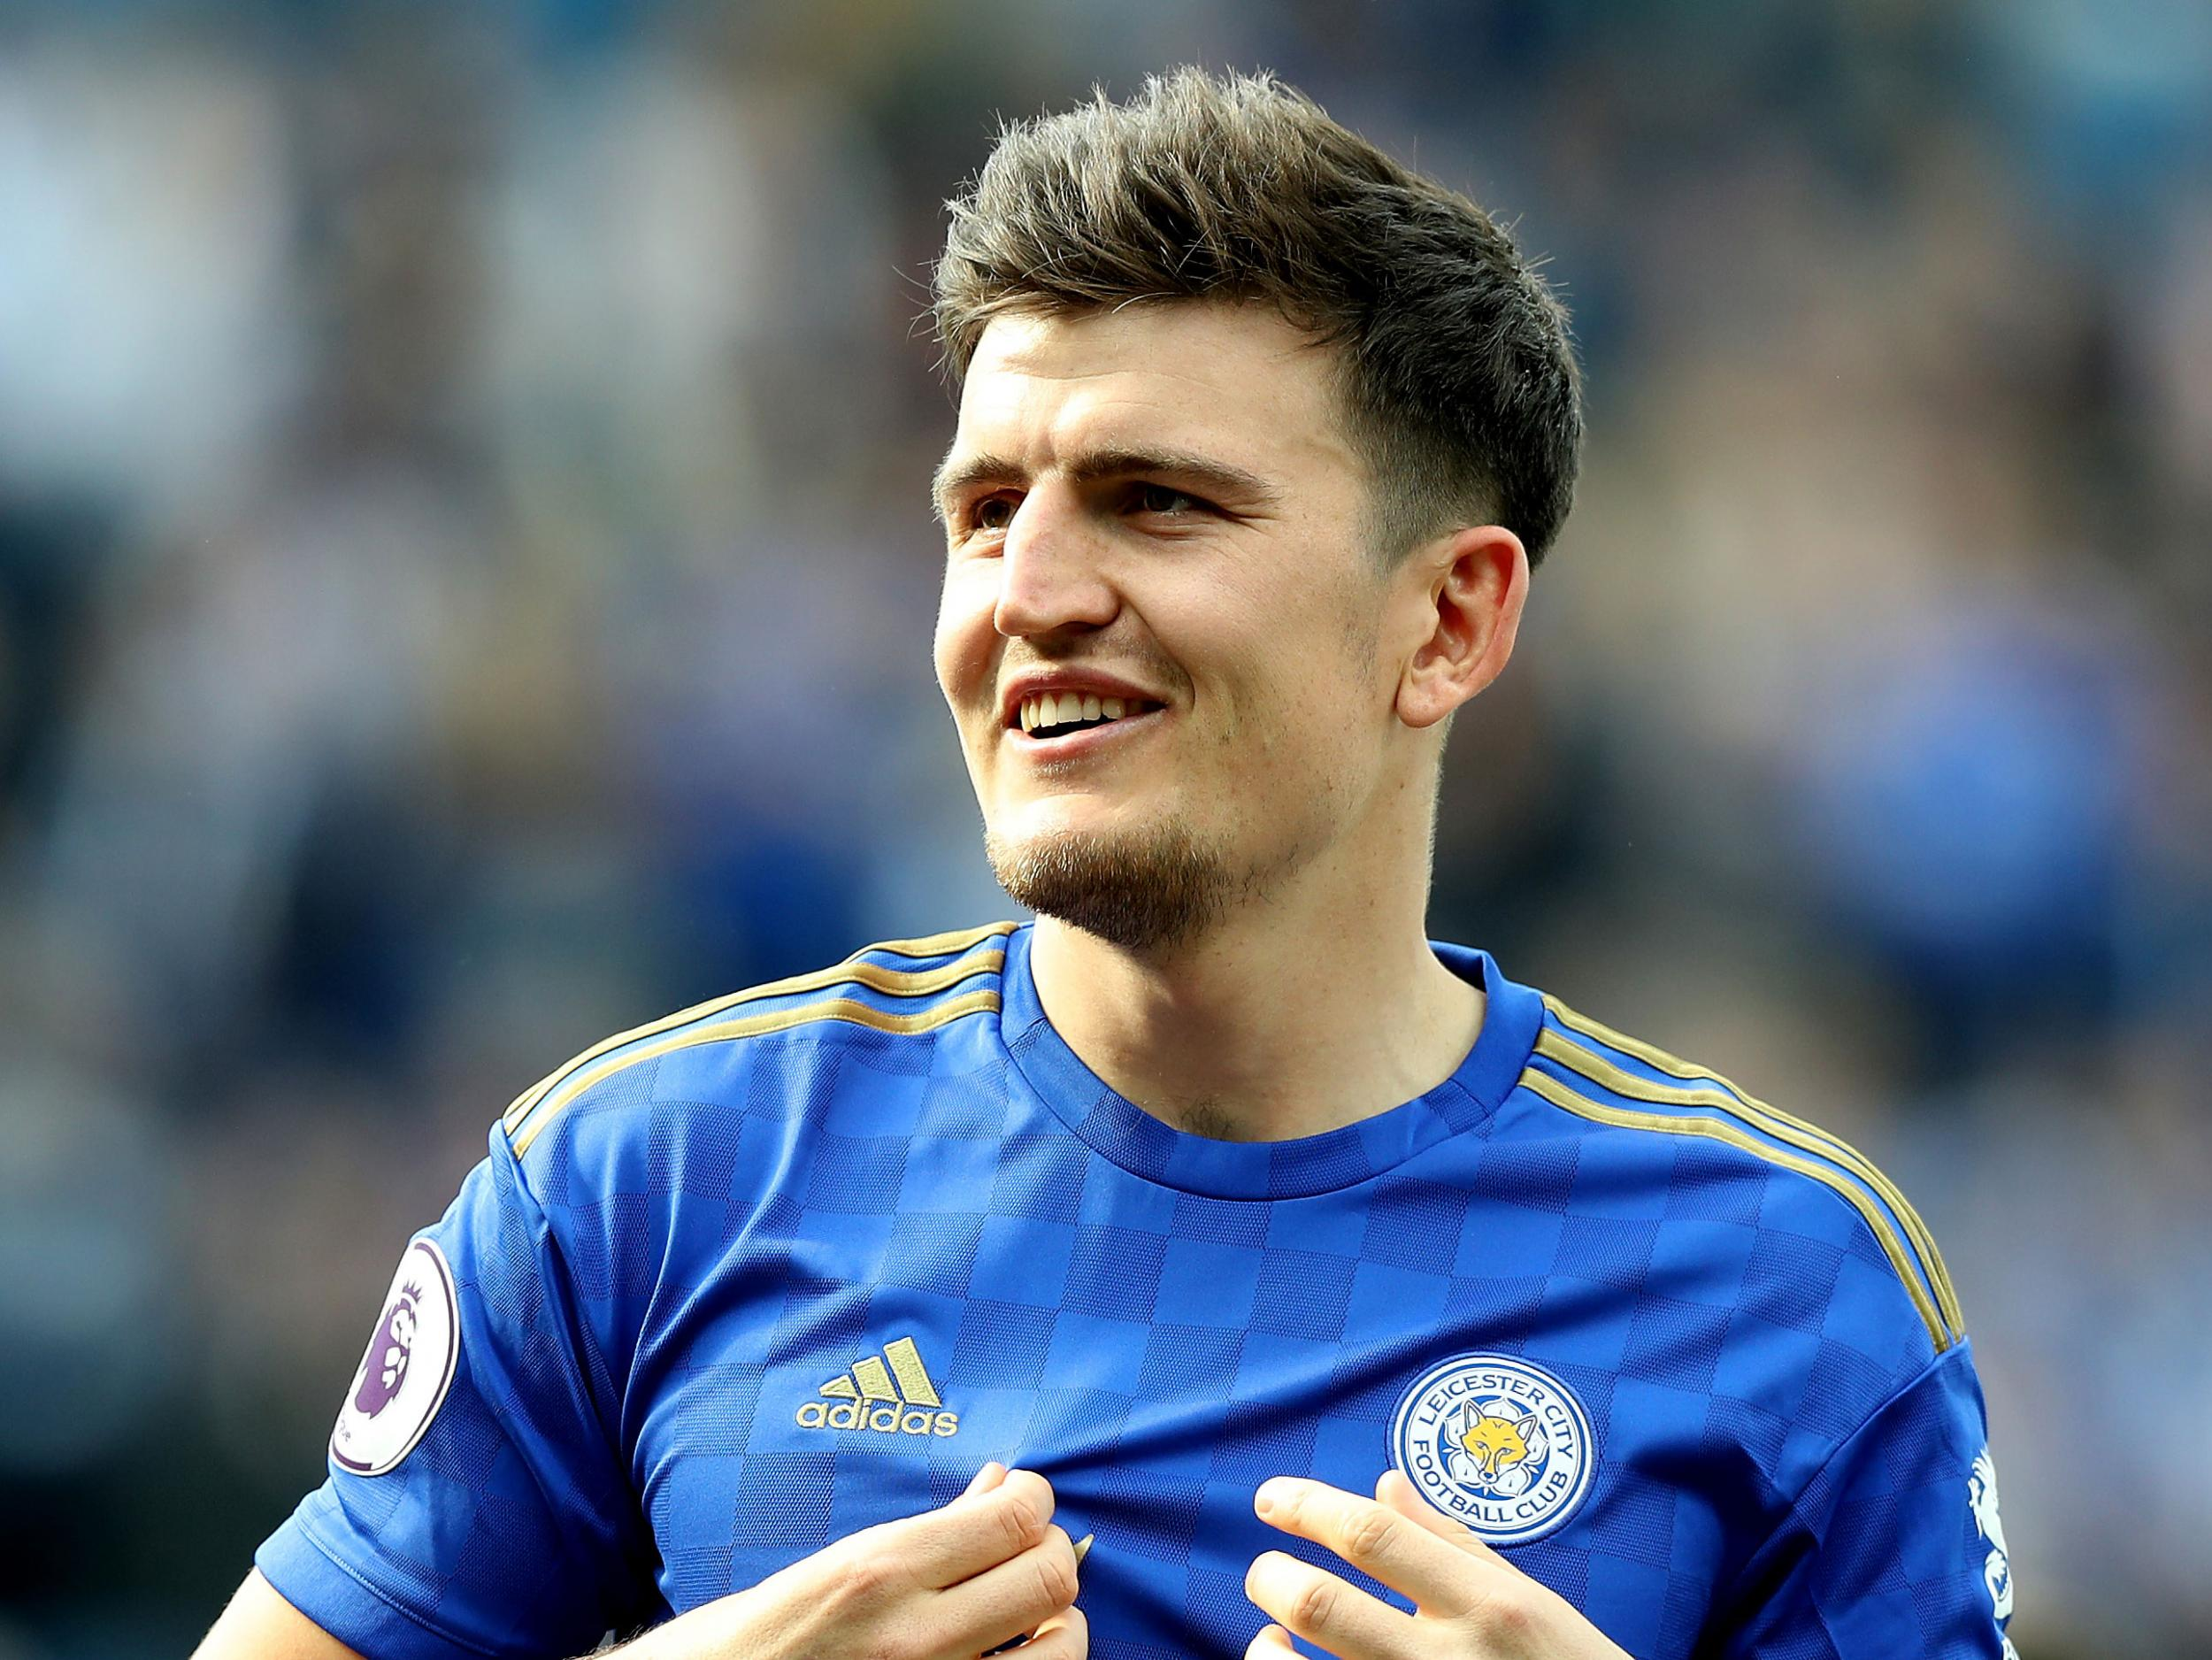 Manchester United transfer news: Harry Maguire deal close as United fall short of Leicester's £80m valuation